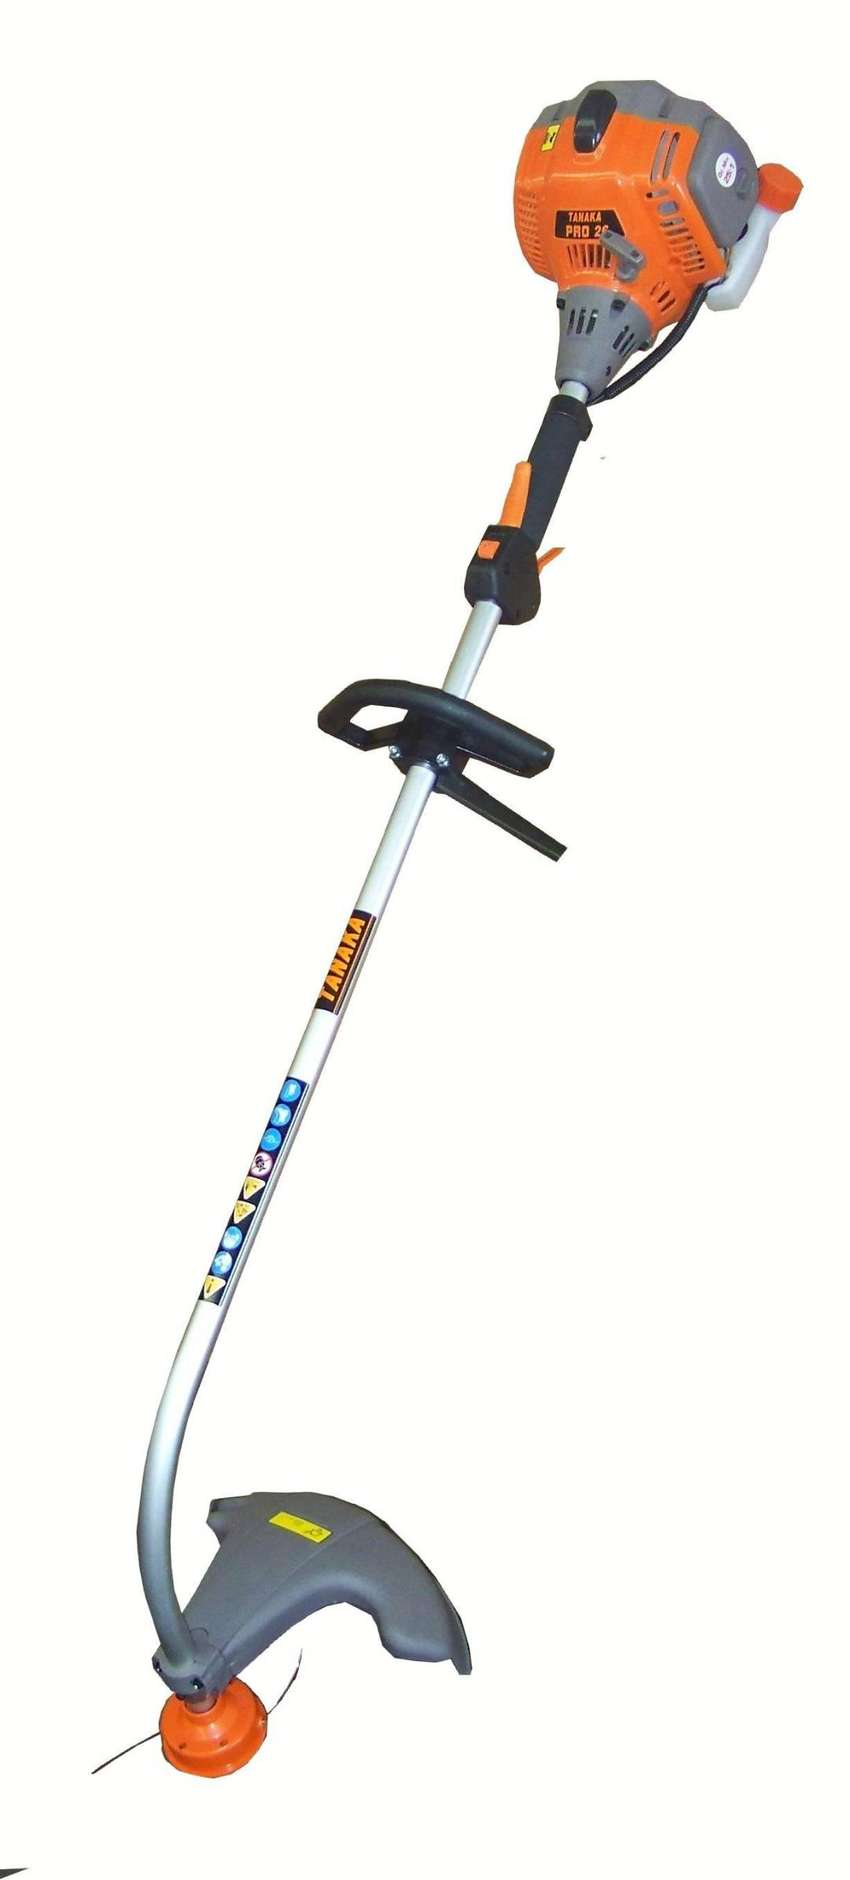 26cc Bent Shaft Trimmer Brush cutter 2-stroke compare, Power Pr 0